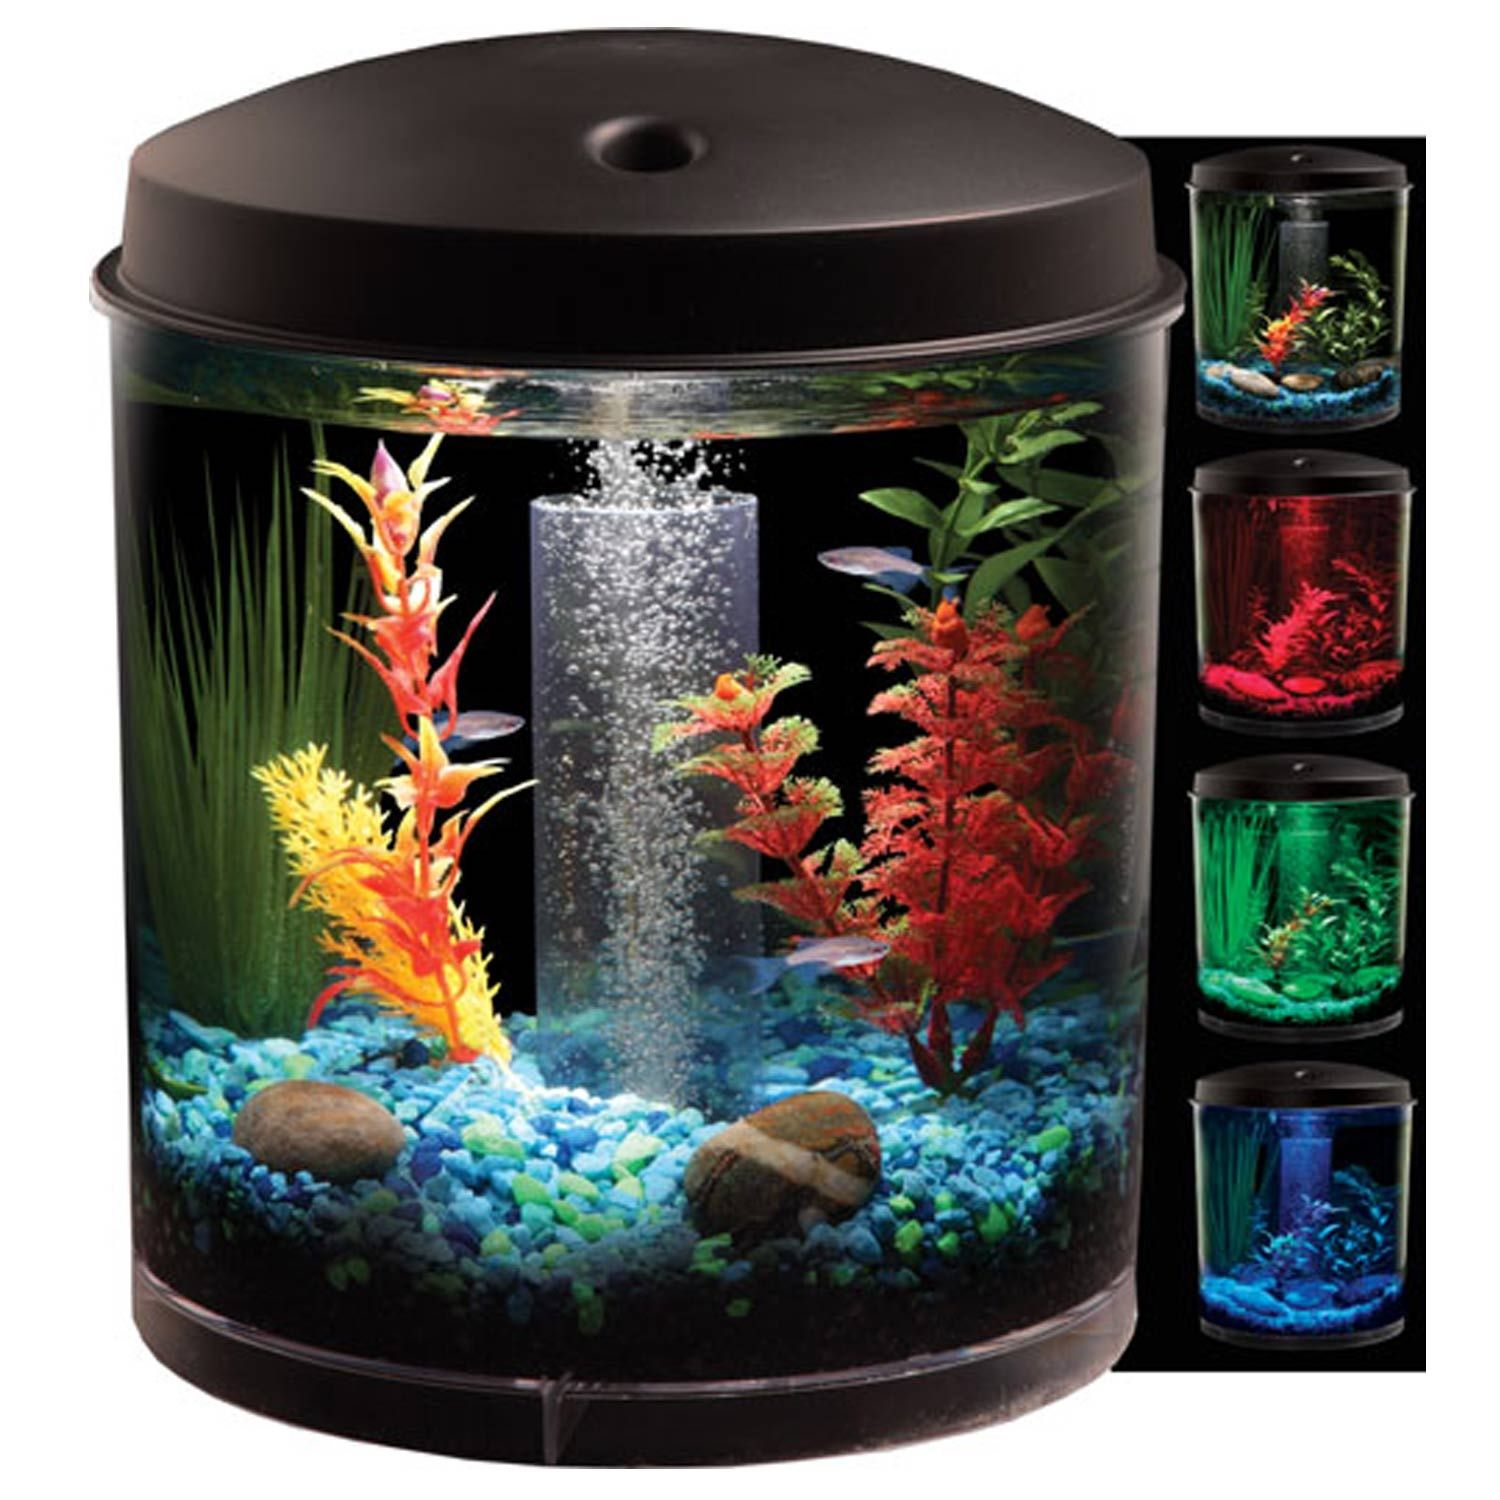 Petco 360 View Aquarium Kit 30 00 2 Gallon Aquarium Kit Small Fish Tanks Betta Fish Tank